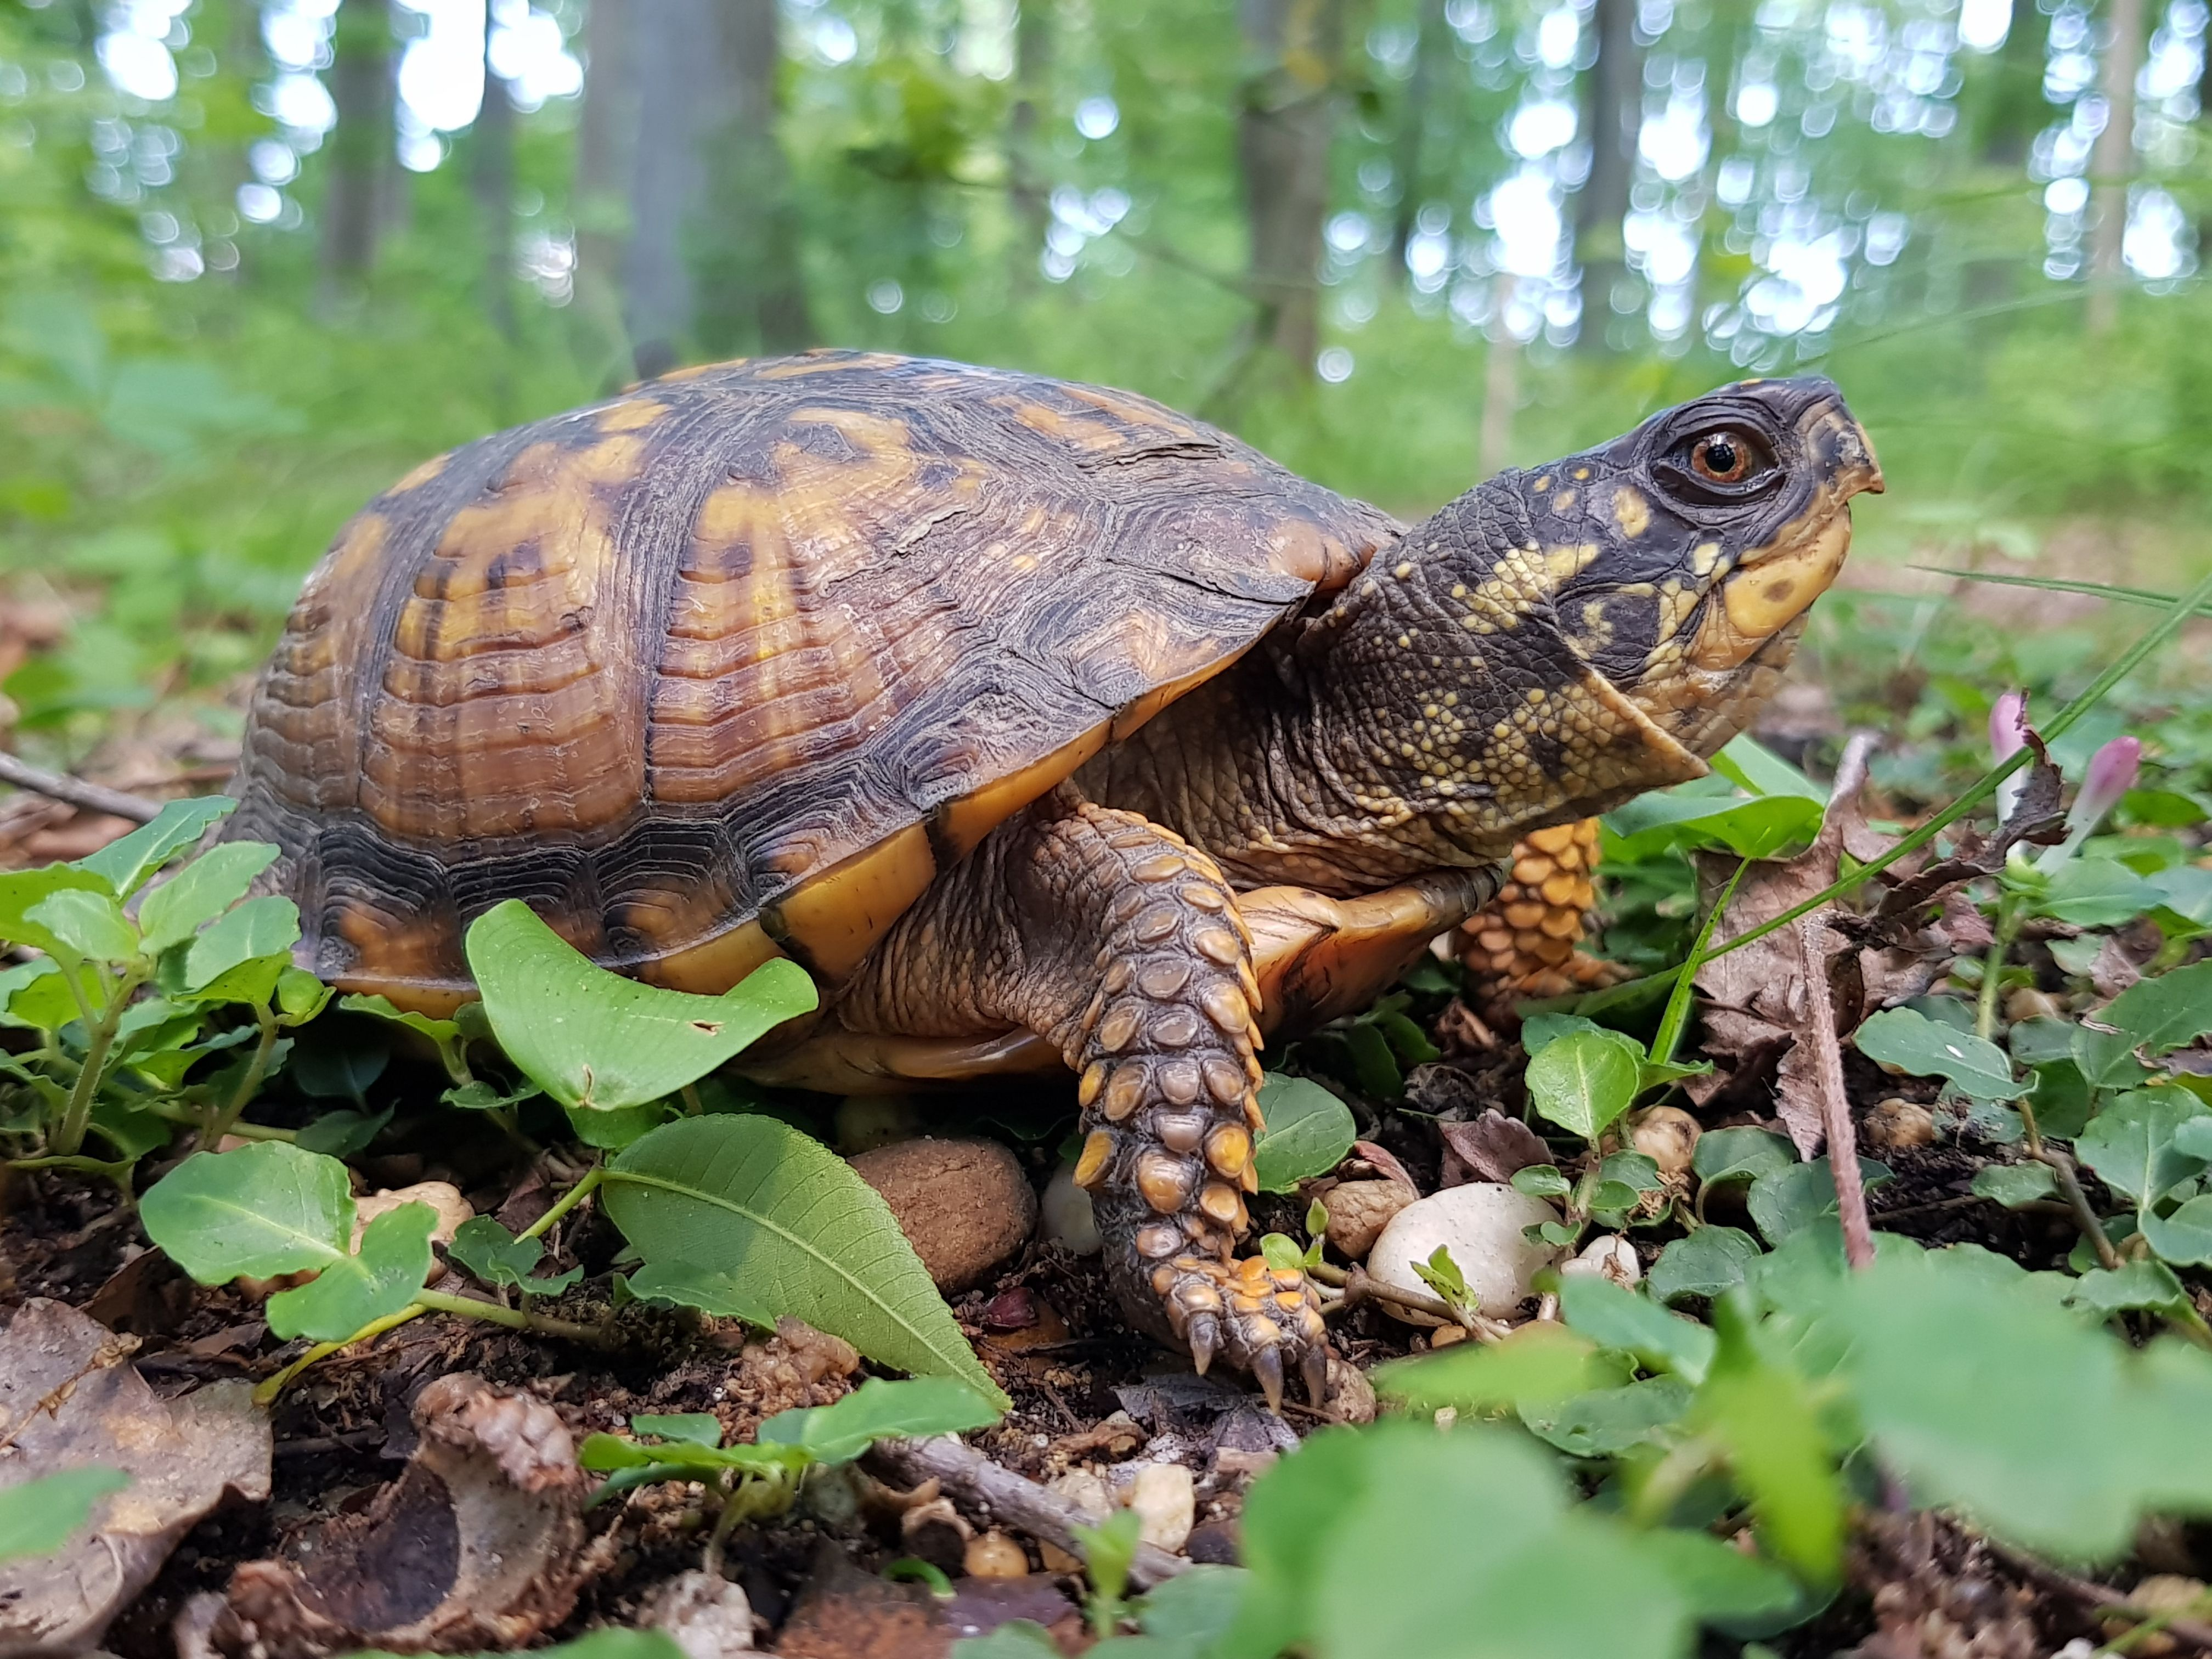 Are We Headed for a World Without Turtles?